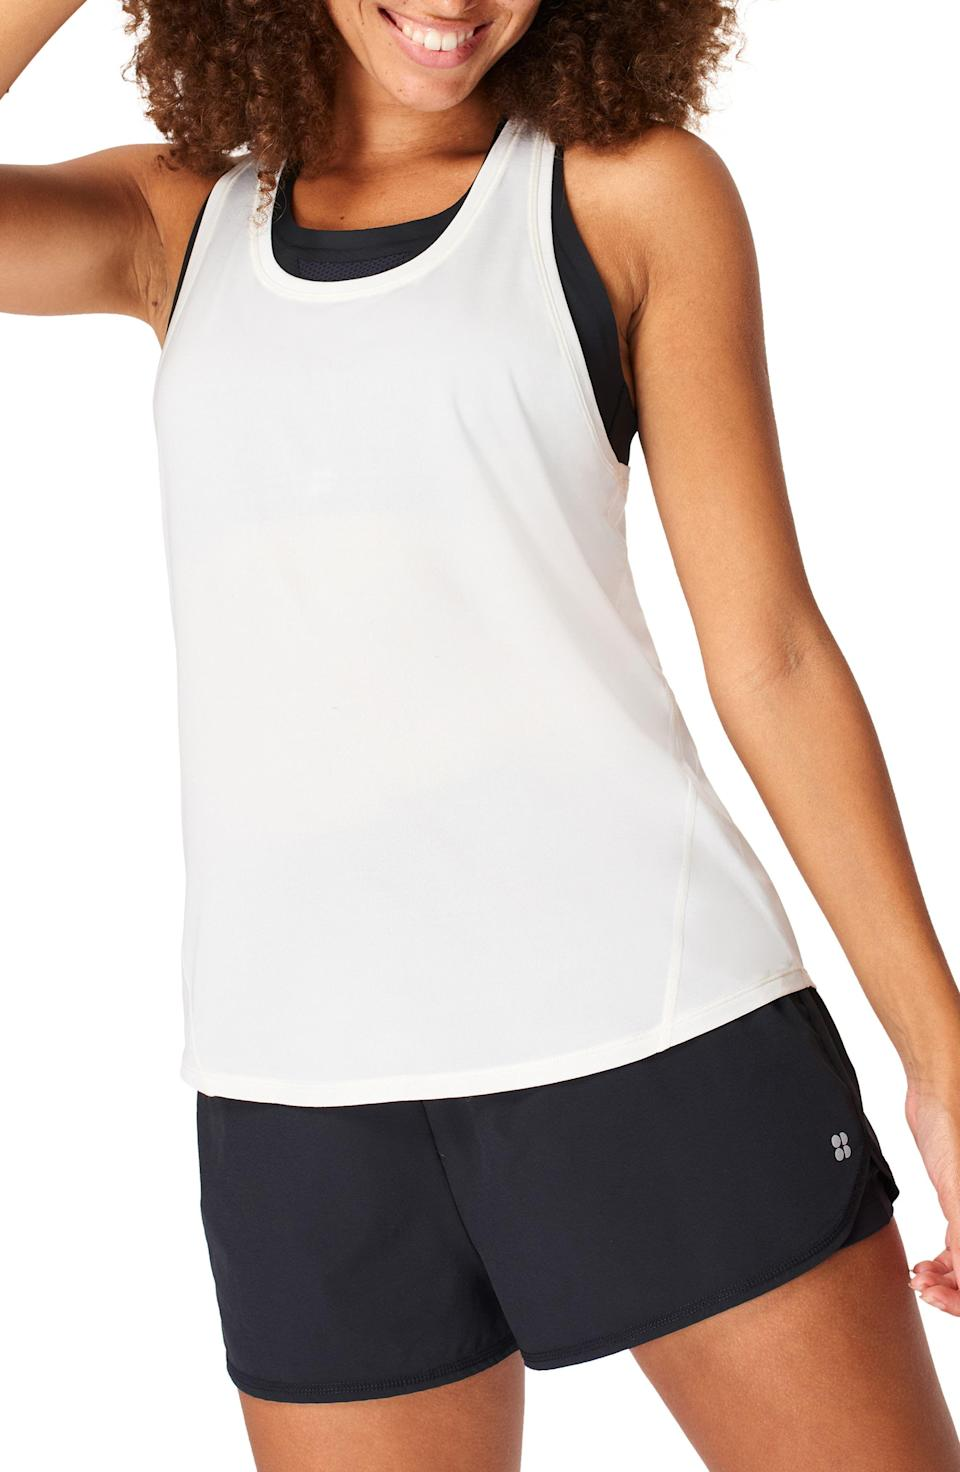 """<p><strong>Sweaty Betty</strong></p><p>nordstrom.com</p><p><strong>$32.40</strong></p><p><a href=""""https://go.redirectingat.com?id=74968X1596630&url=https%3A%2F%2Fwww.nordstrom.com%2Fs%2Fsweaty-betty-energize-racerback-workout-tank%2F6433726&sref=https%3A%2F%2Fwww.prevention.com%2Ffitness%2Fworkout-clothes-gear%2Fg37542513%2Fworkout-tops-for-women%2F"""" rel=""""nofollow noopener"""" target=""""_blank"""" data-ylk=""""slk:Shop Now"""" class=""""link rapid-noclick-resp"""">Shop Now</a></p><p>""""It fits true to size, feels soft, and dries quickly after a tough workout,"""" wrote one Nordstrom shopper. So you can stay cool and confident as you move through your next class with this breezy racerback. It <strong>has a lightweight fabric that wicks away sweat</strong> and has a comfortable fit that allows you to move around freely.</p>"""